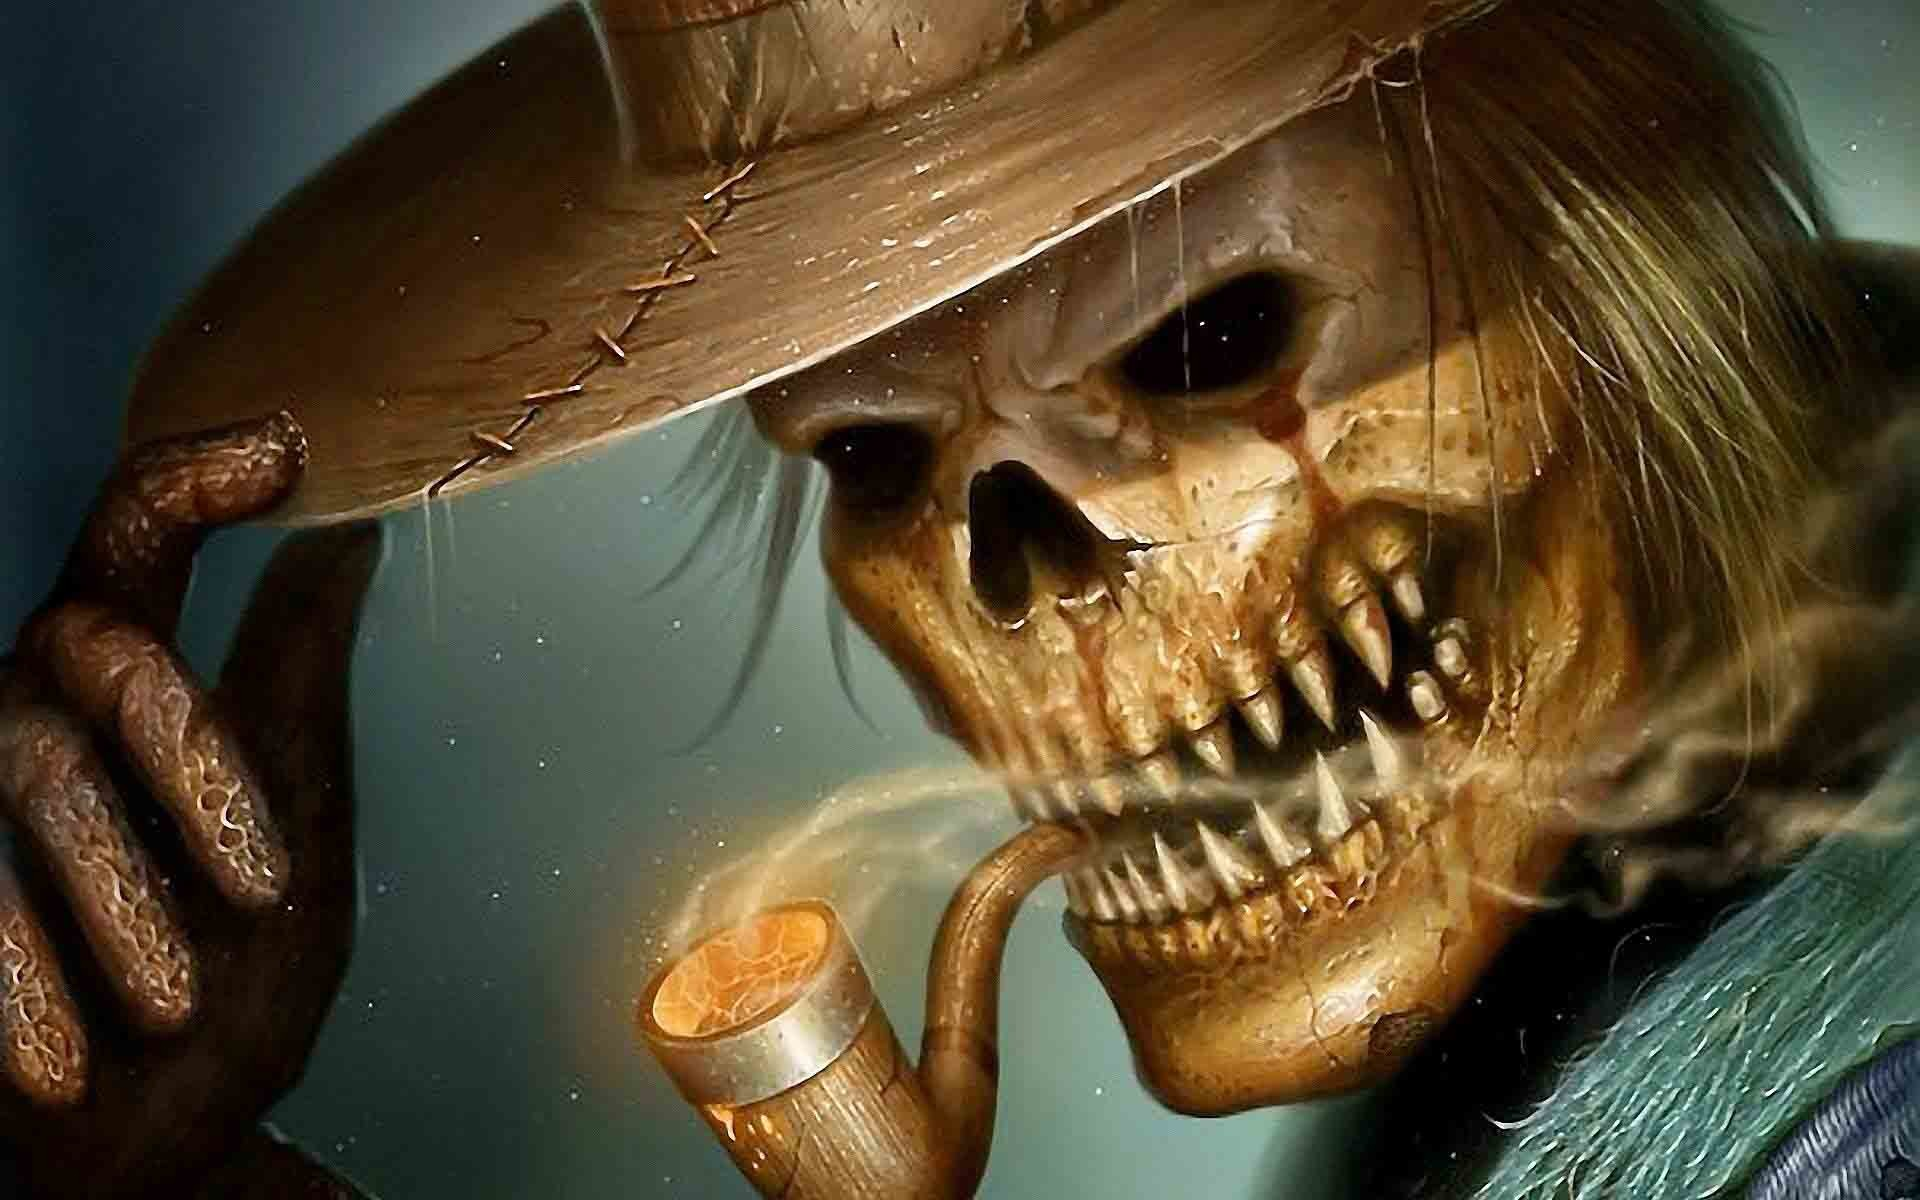 Funny Skeleton Wallpaper Best HD Images of Skeleton HD | HD Wallpapers |  Pinterest | Skeletons, Hd wallpaper and Wallpaper